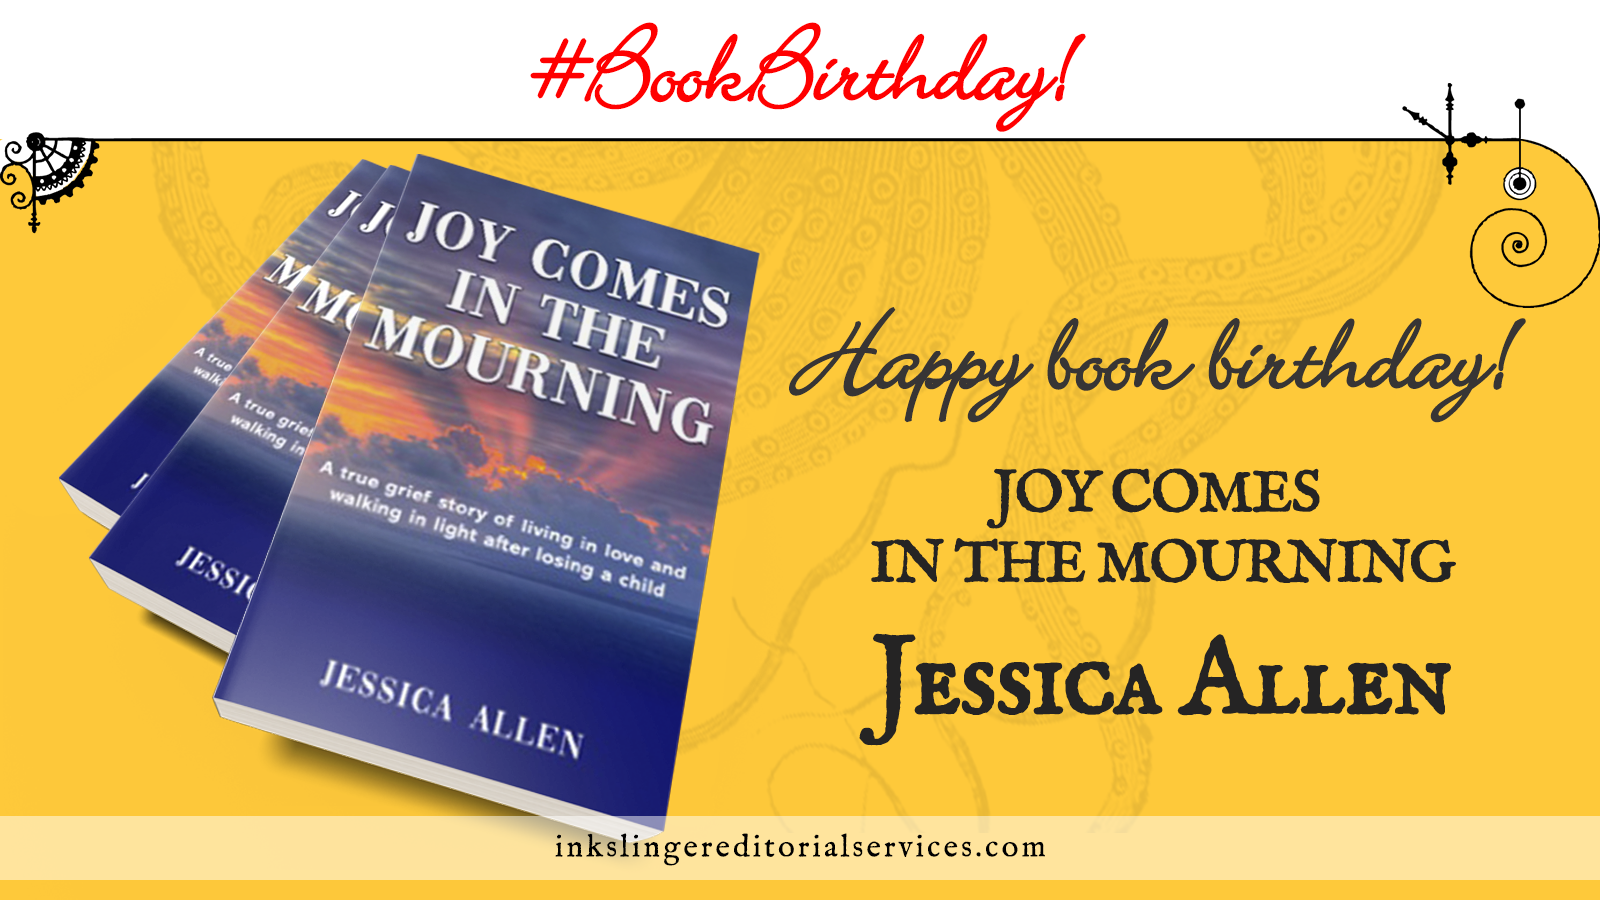 #BookBirthday Happy book birthday! Joy Comes in the Mourning by Jessica Allen. A stack of three of the books over a dark yellow background.